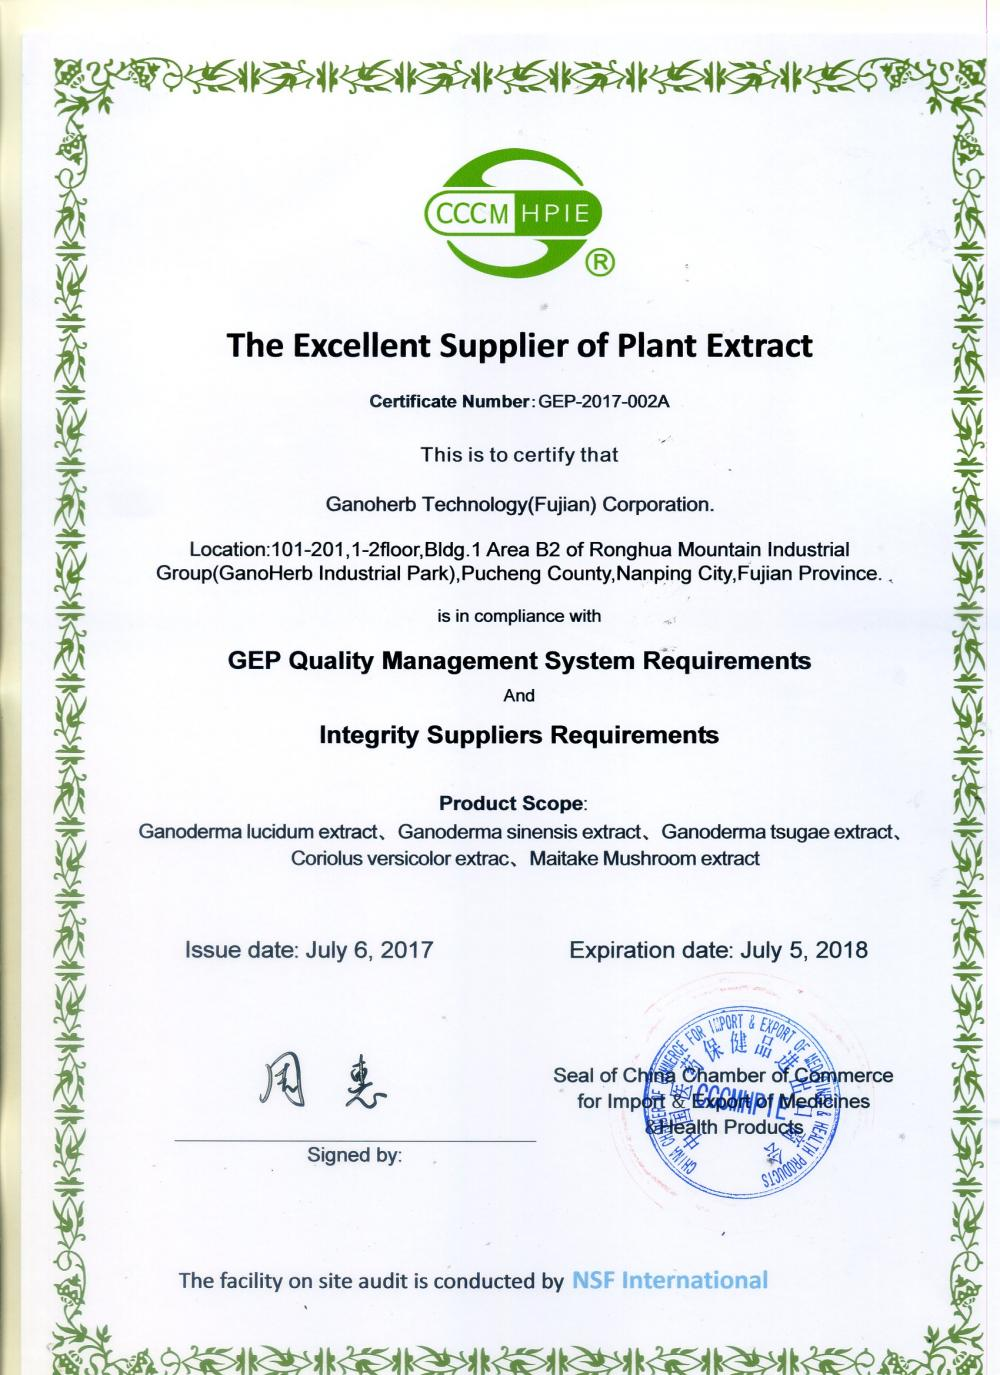 Excellent supplier of plant extract